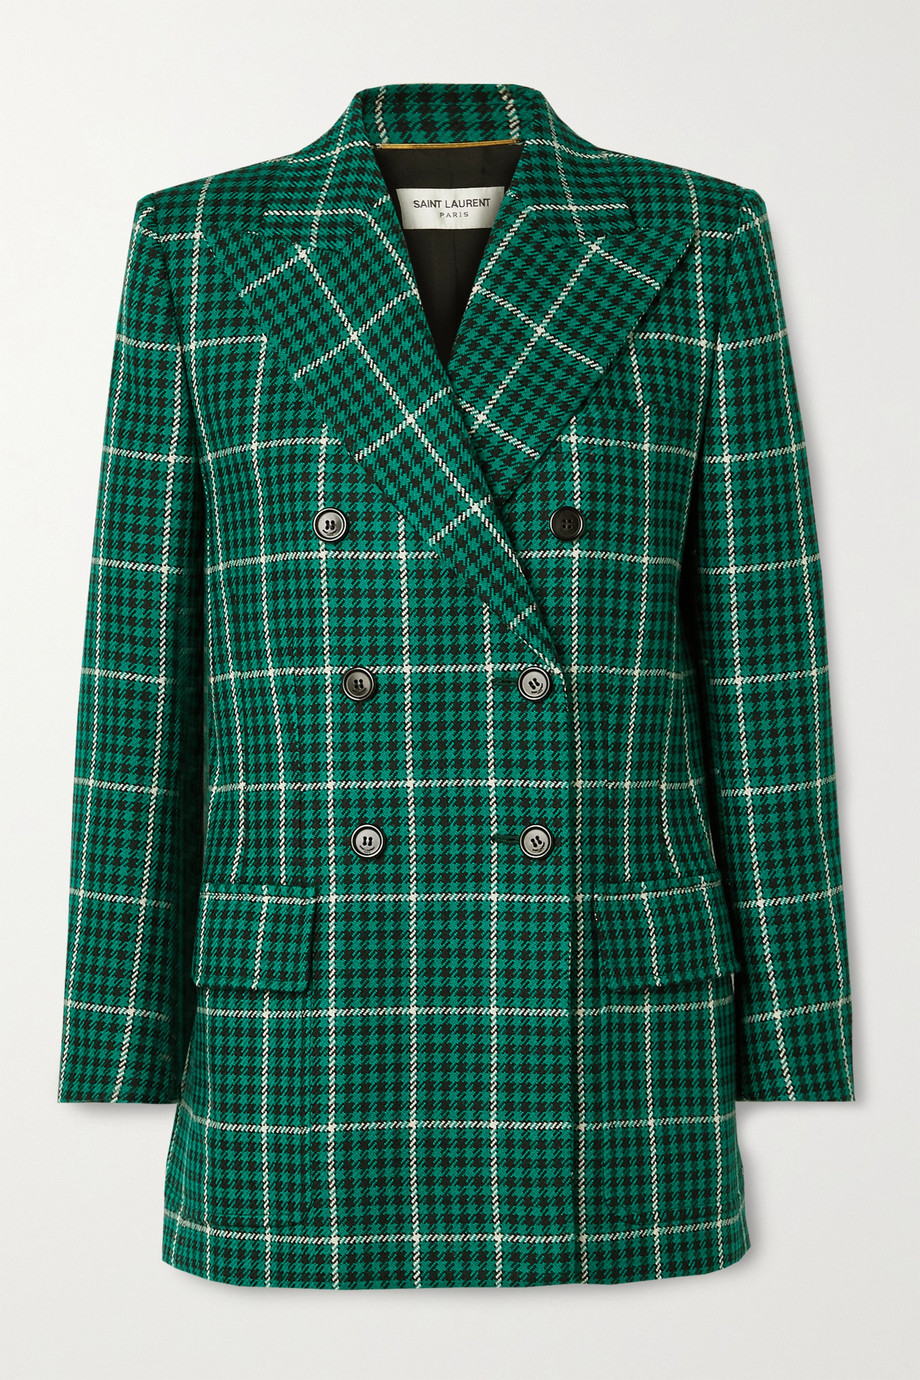 SAINT LAURENT Double-breasted checked wool blazer